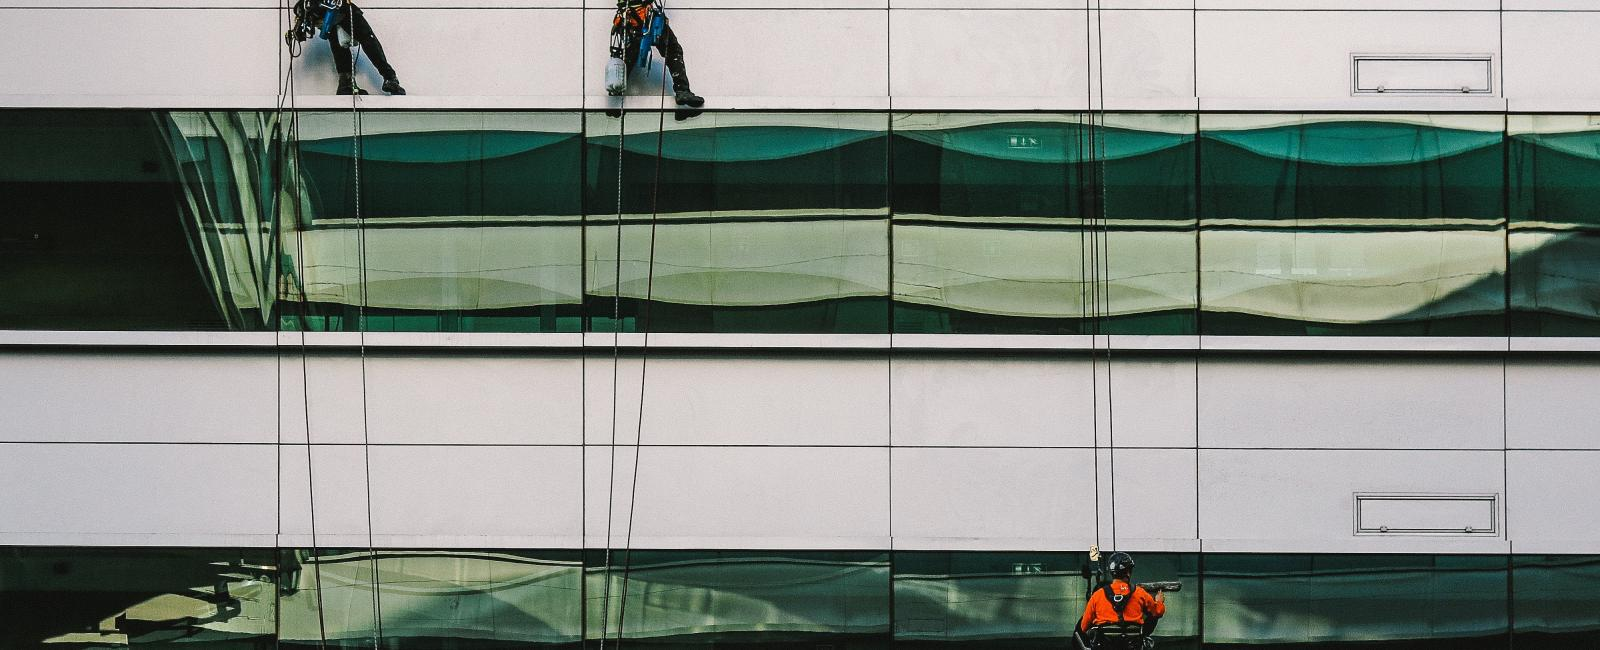 Window washers